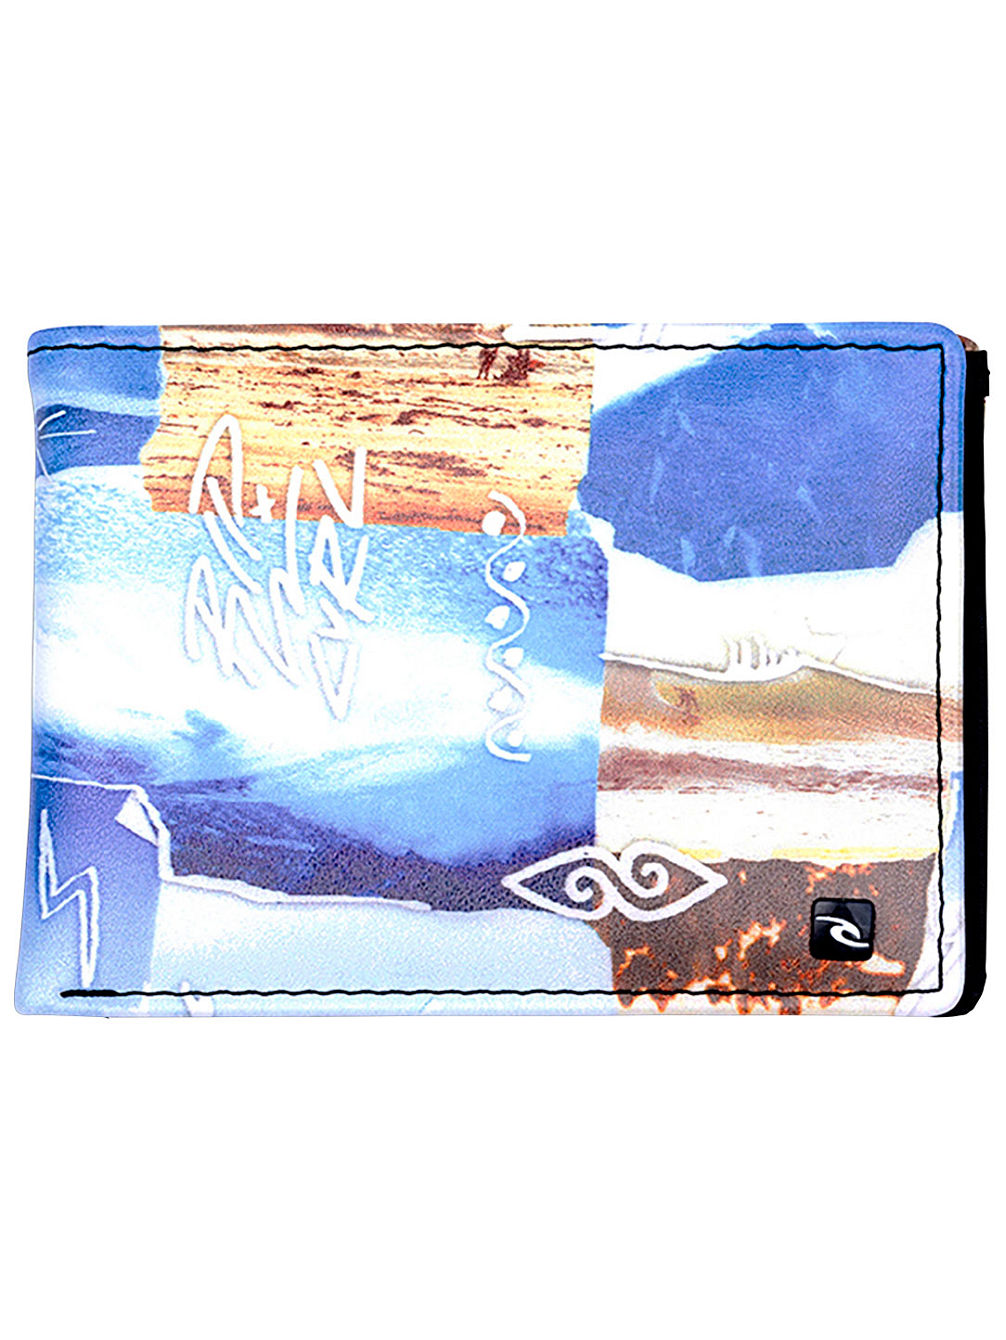 57287f24212 Buy Rip Curl Capture Pu Slim Wallet online at Blue Tomato